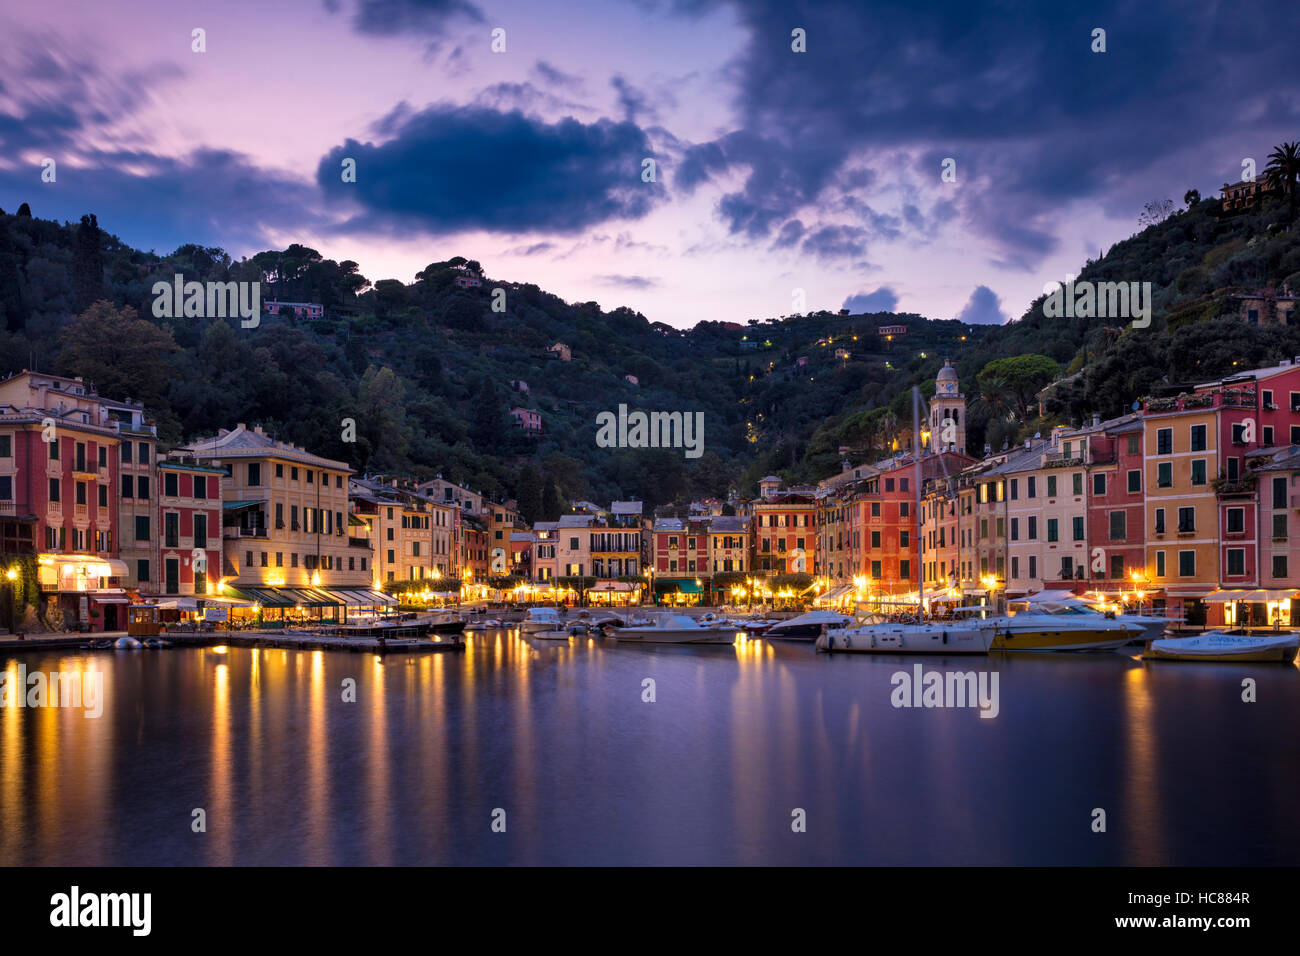 Twilight over harbor town of Portofino, Liguria, Italy - Stock Image